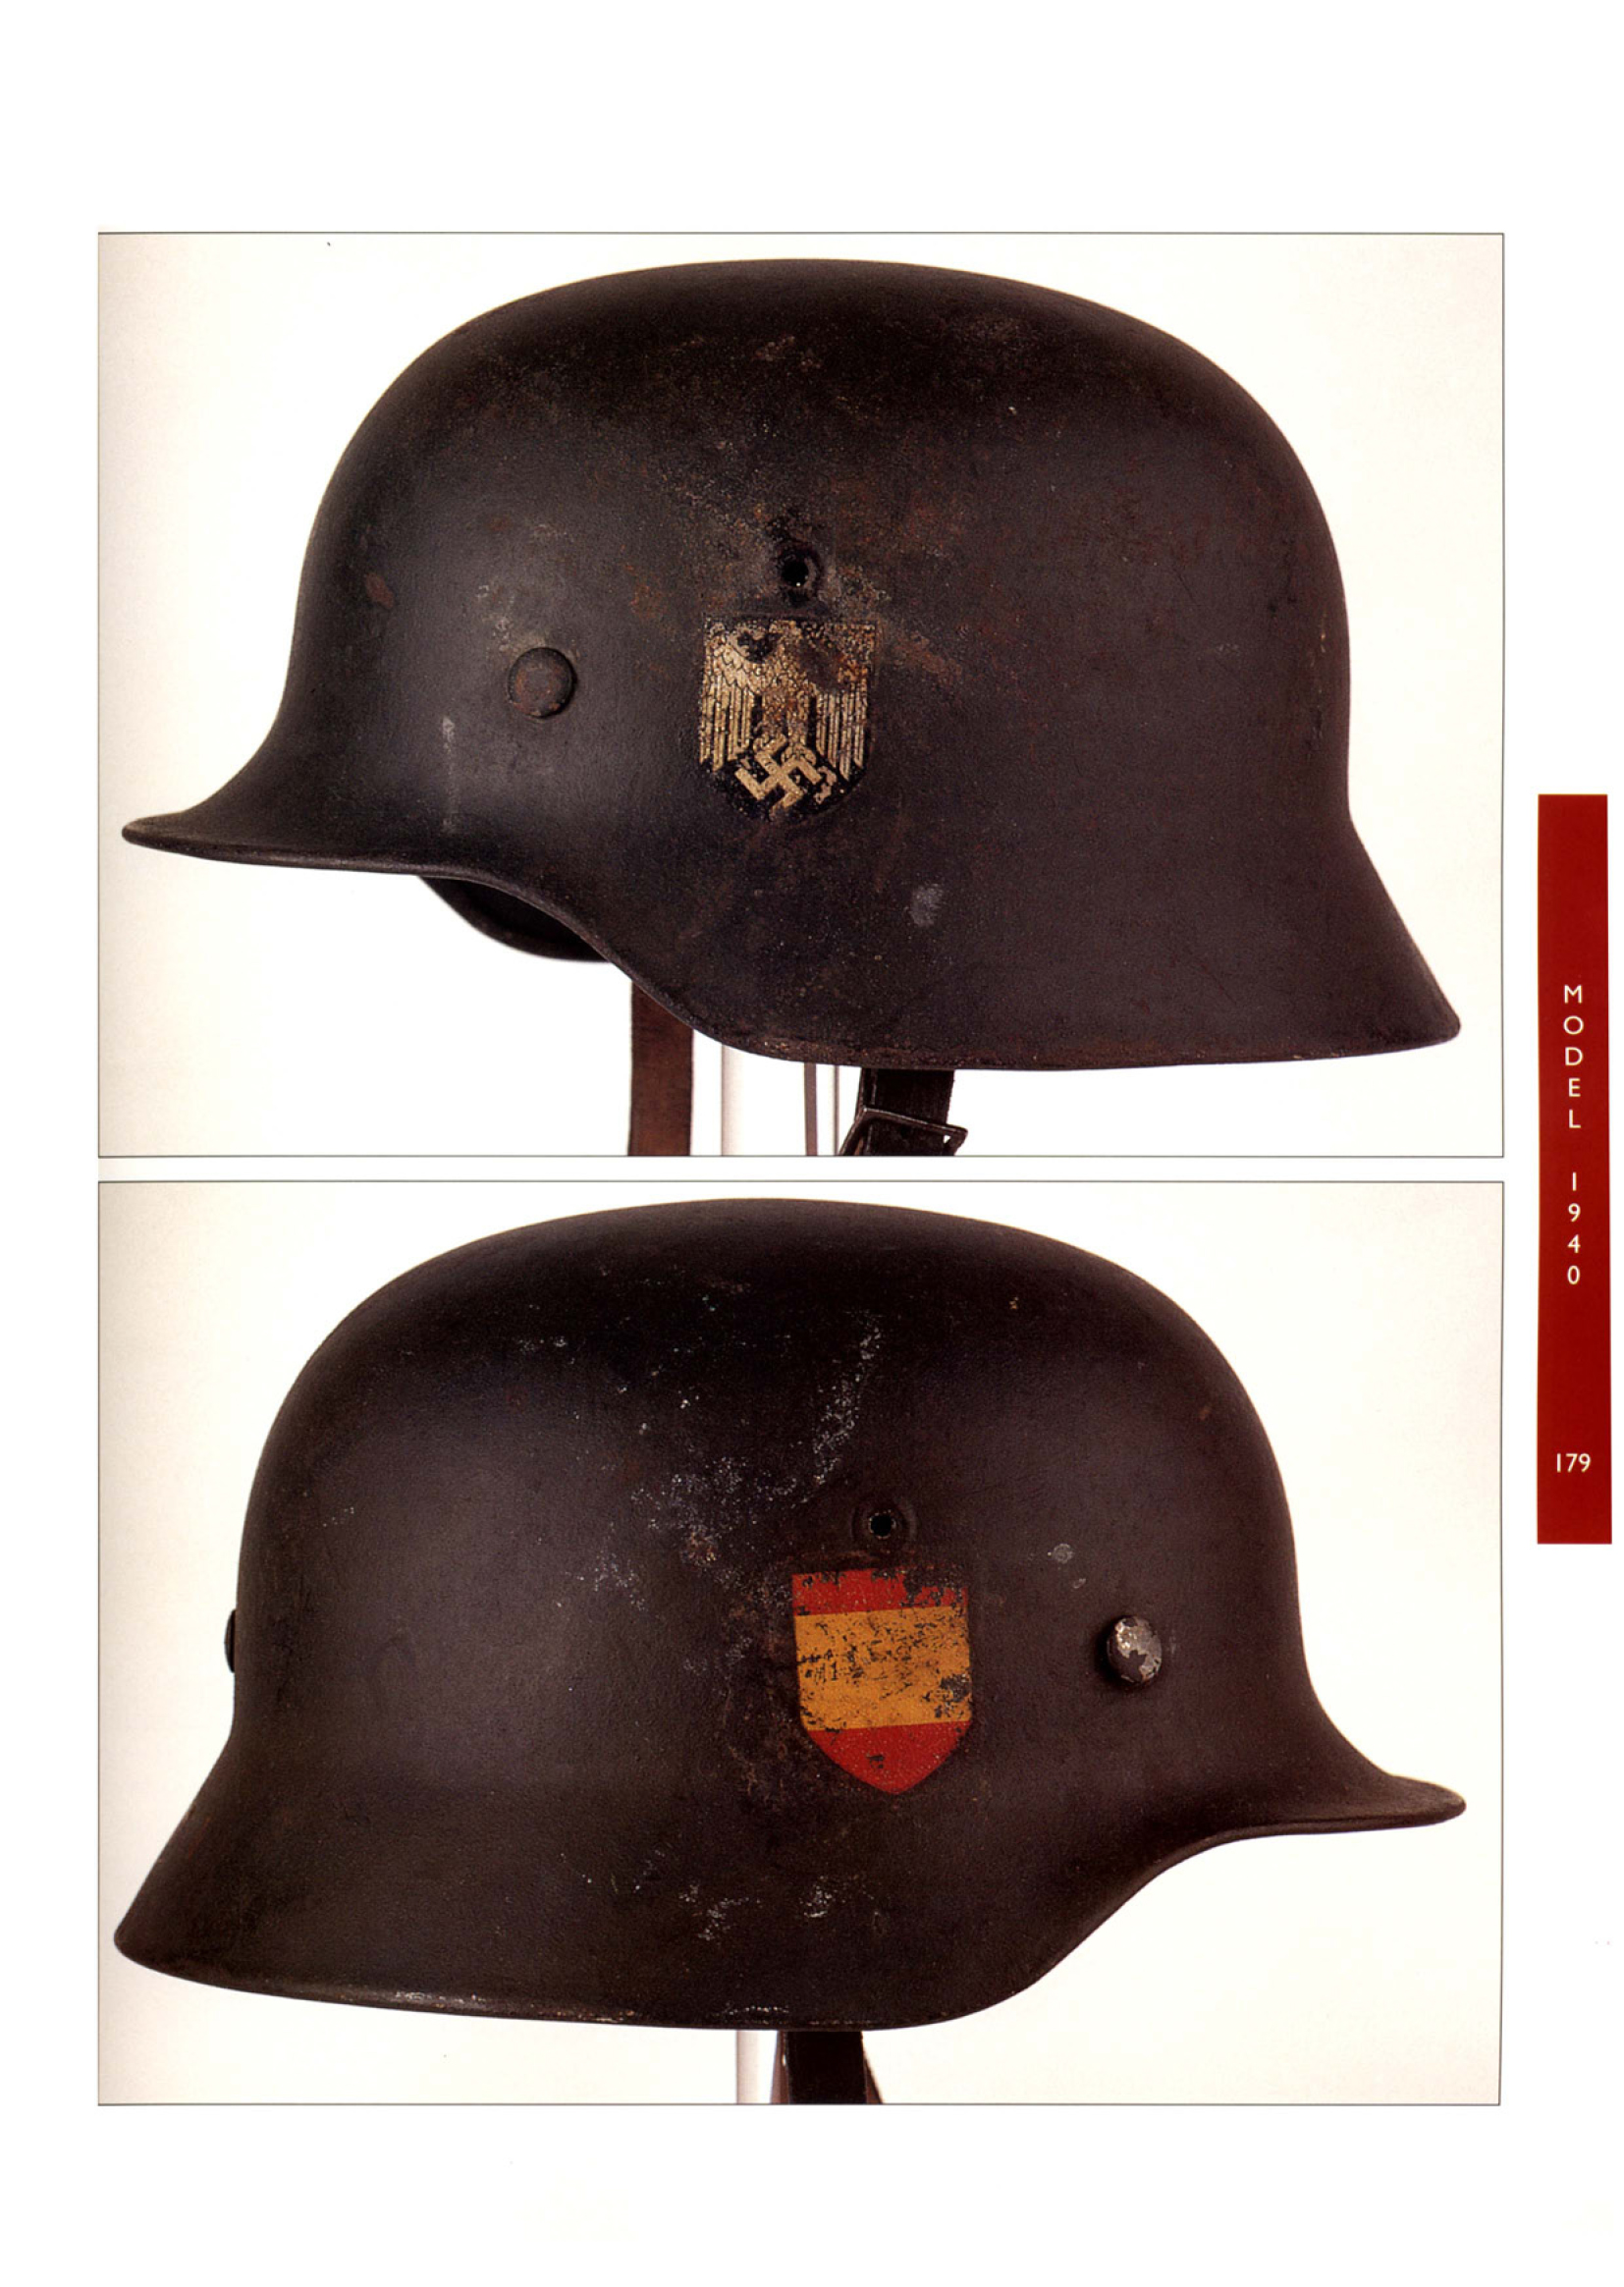 German Helmets of the Second World War-179.jpg